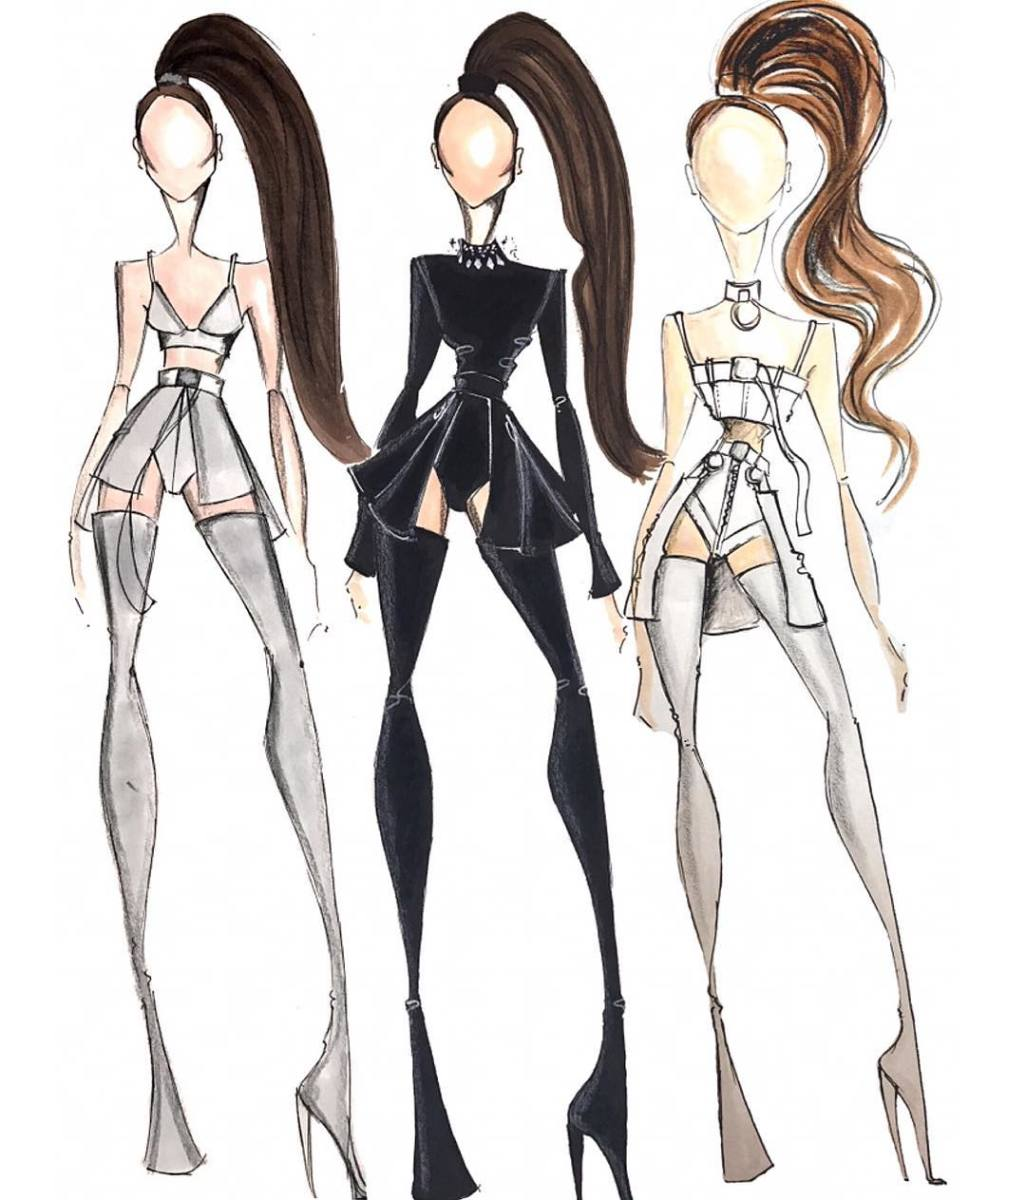 Sketches of the three looks designed by Hearns. Photo: @bryanhearns/Instagram